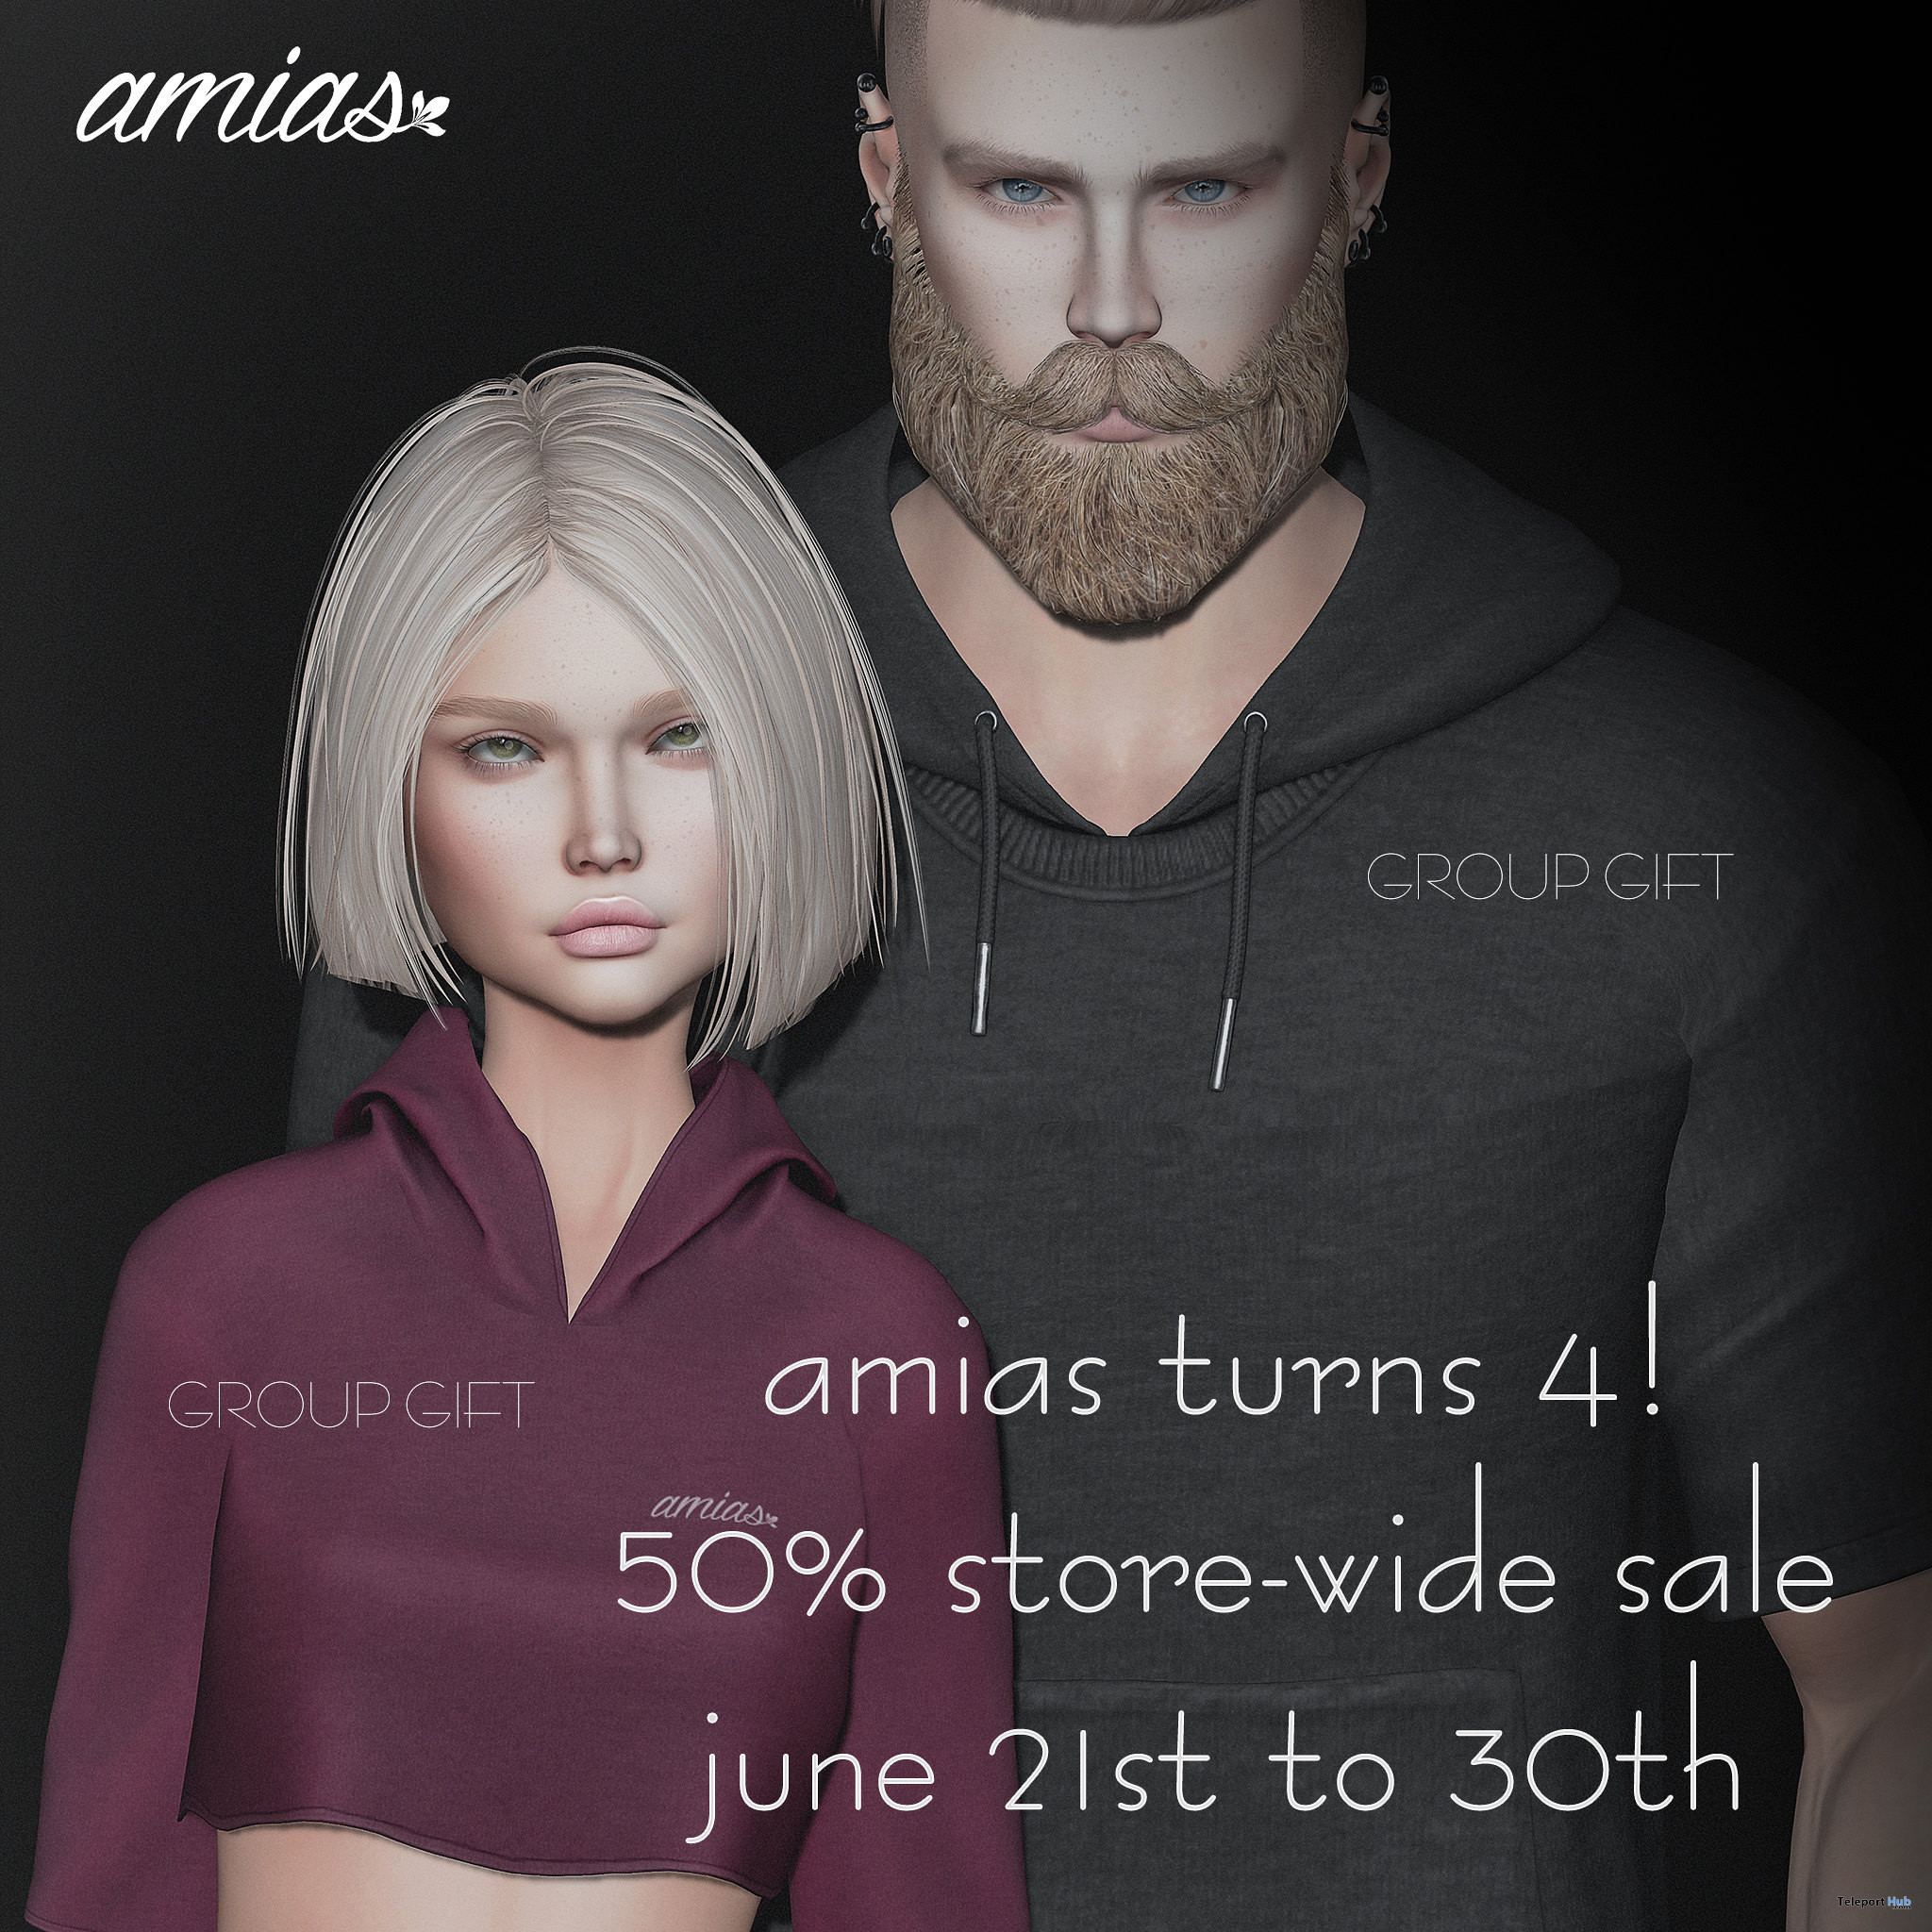 Unisex Sweaters June 2021 Group Gift by amias - Teleport Hub - teleporthub.com